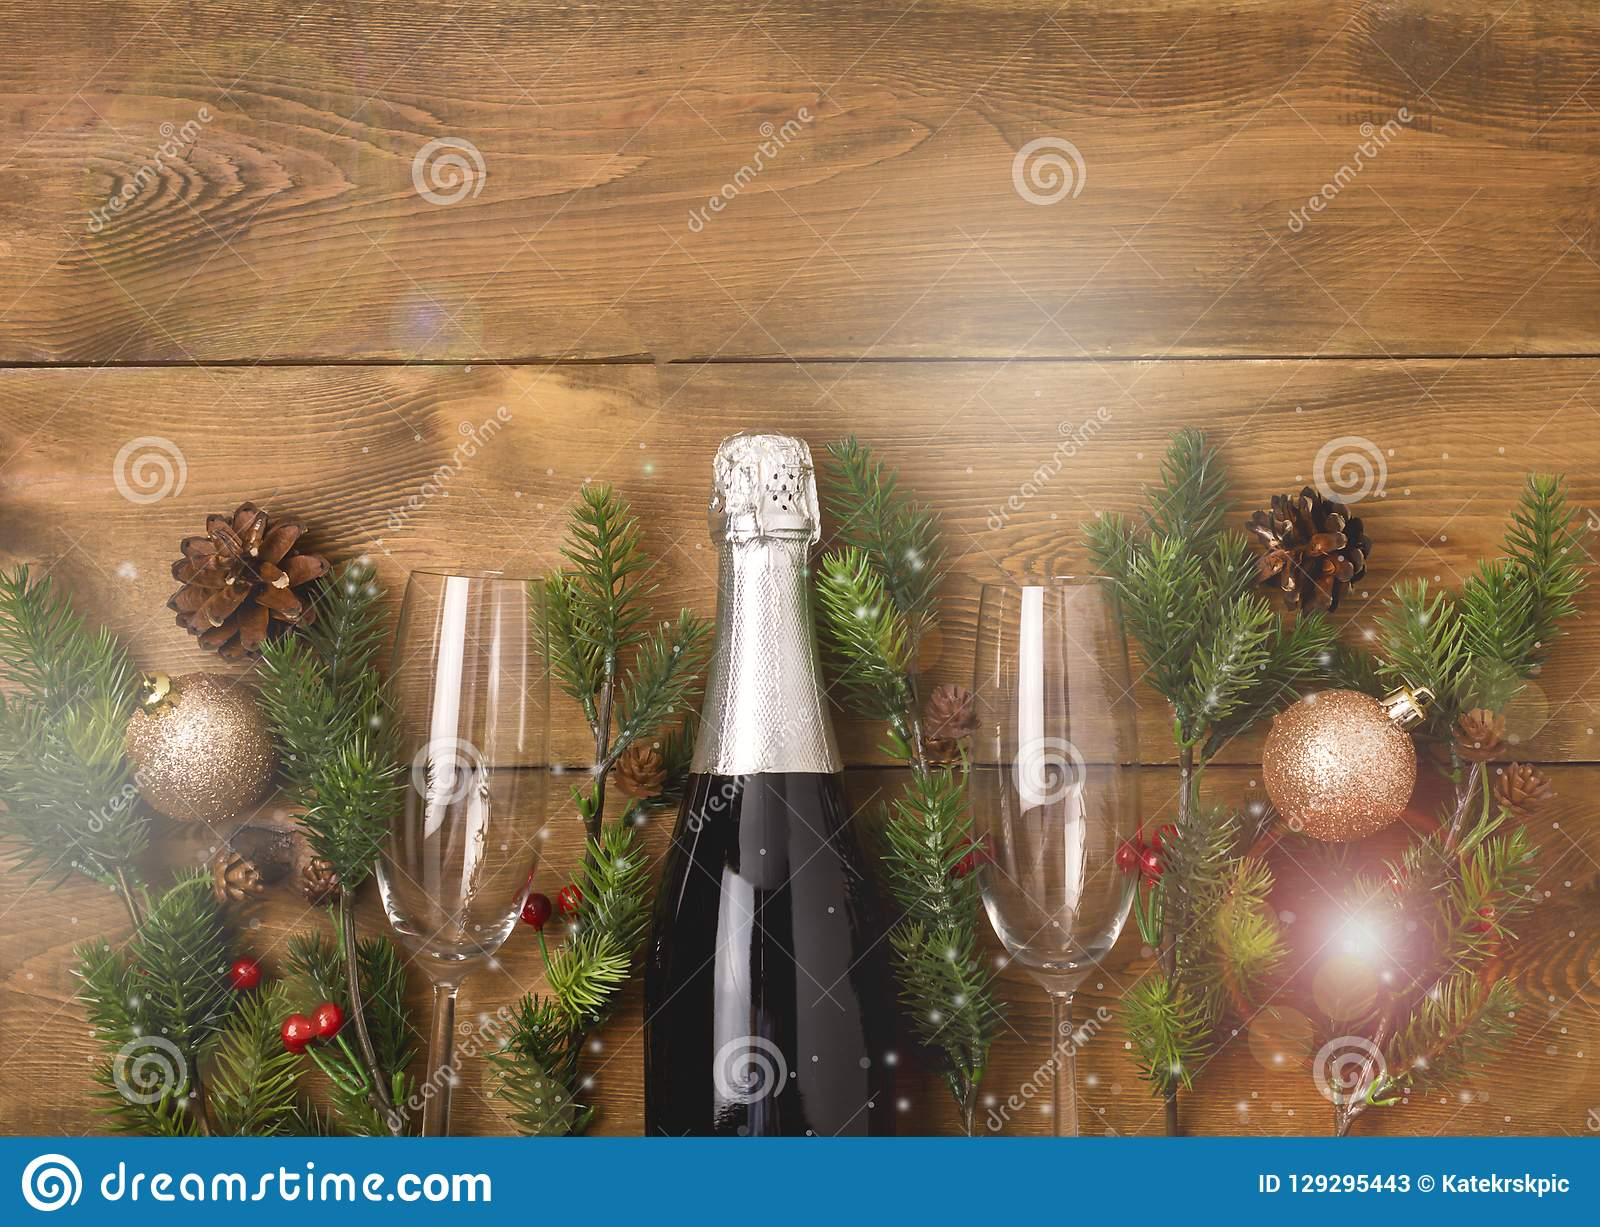 New Years Christmas Celebration Background with Pair of Wineglasses and Bottle of Champagne Christmas New Year Card Fir Decoration